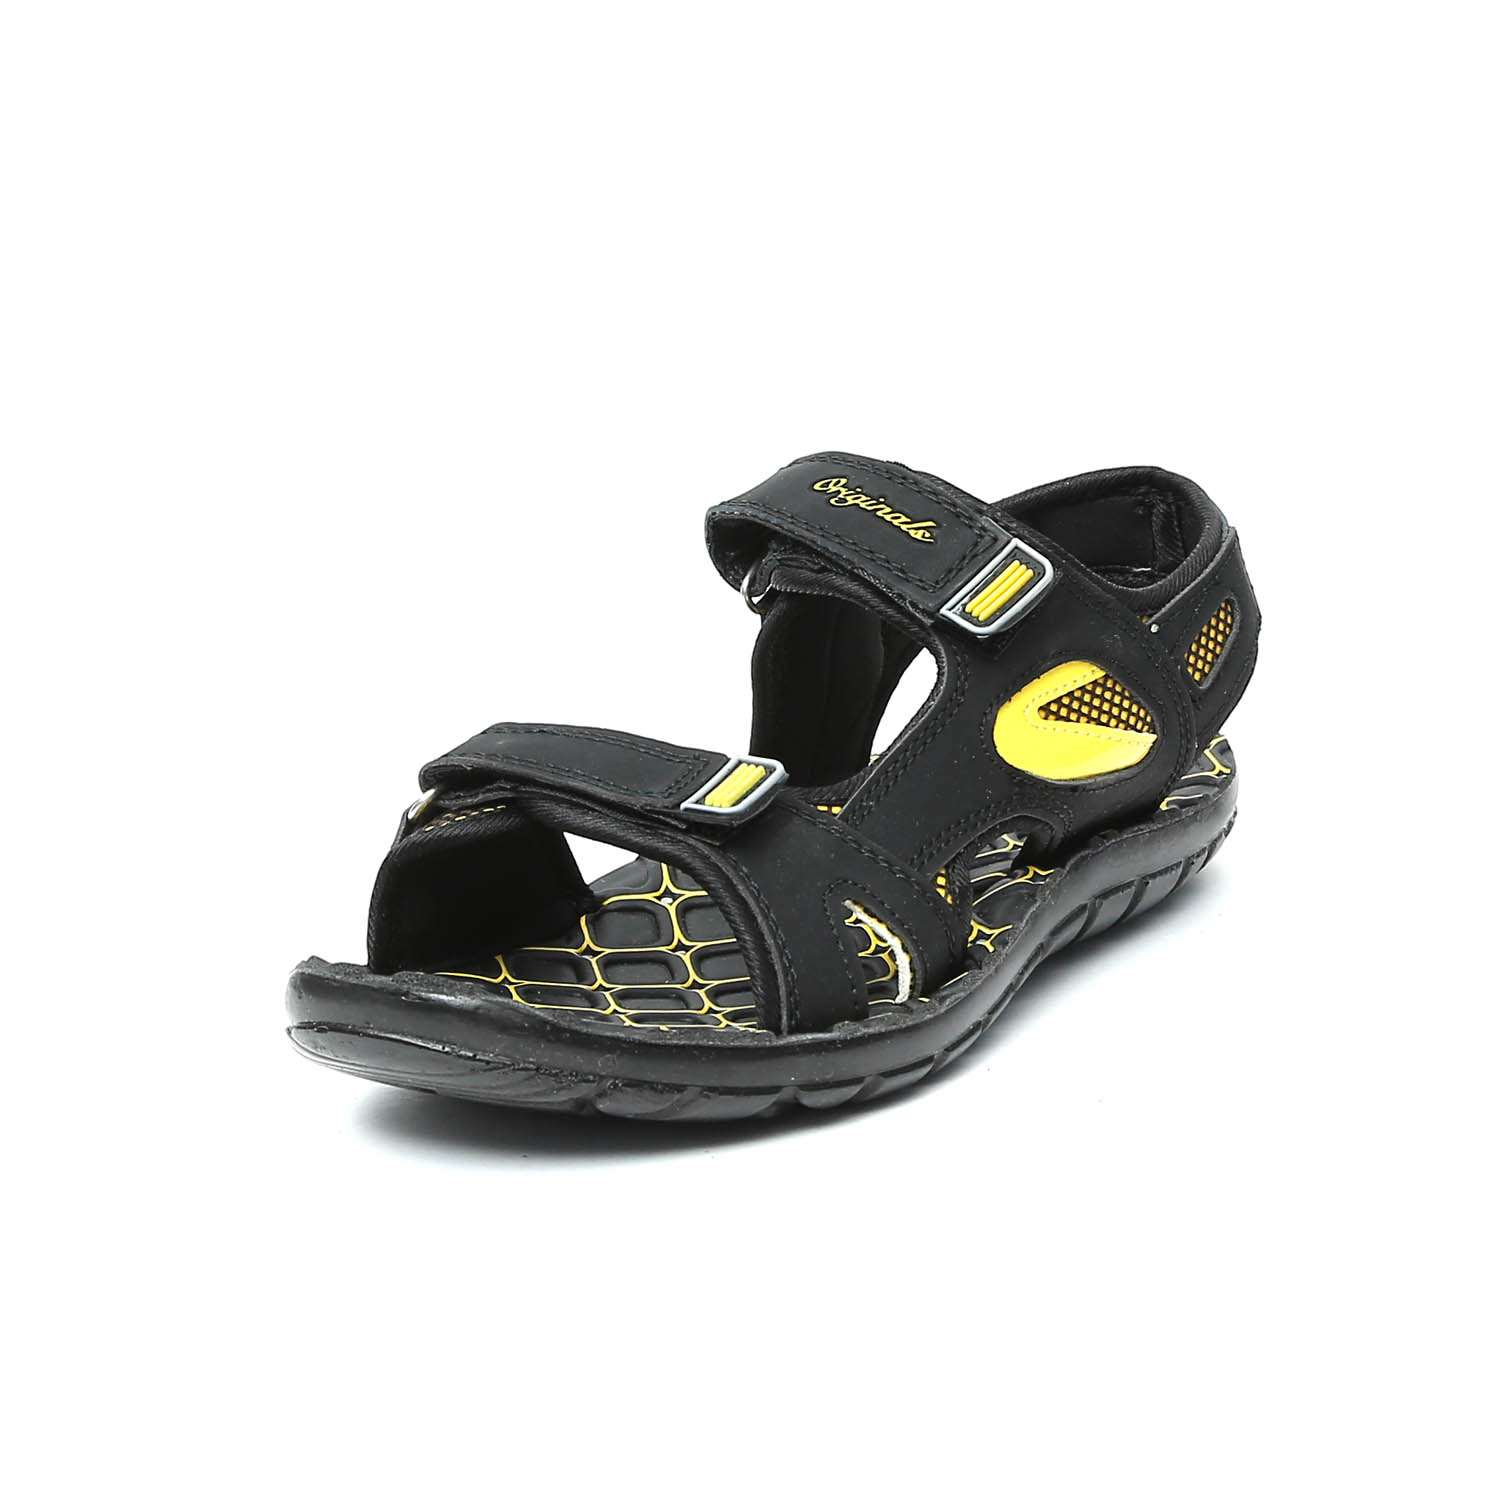 3400b537cd4d Lee Cooper Men s Black and Yellow Sandals   Floaters